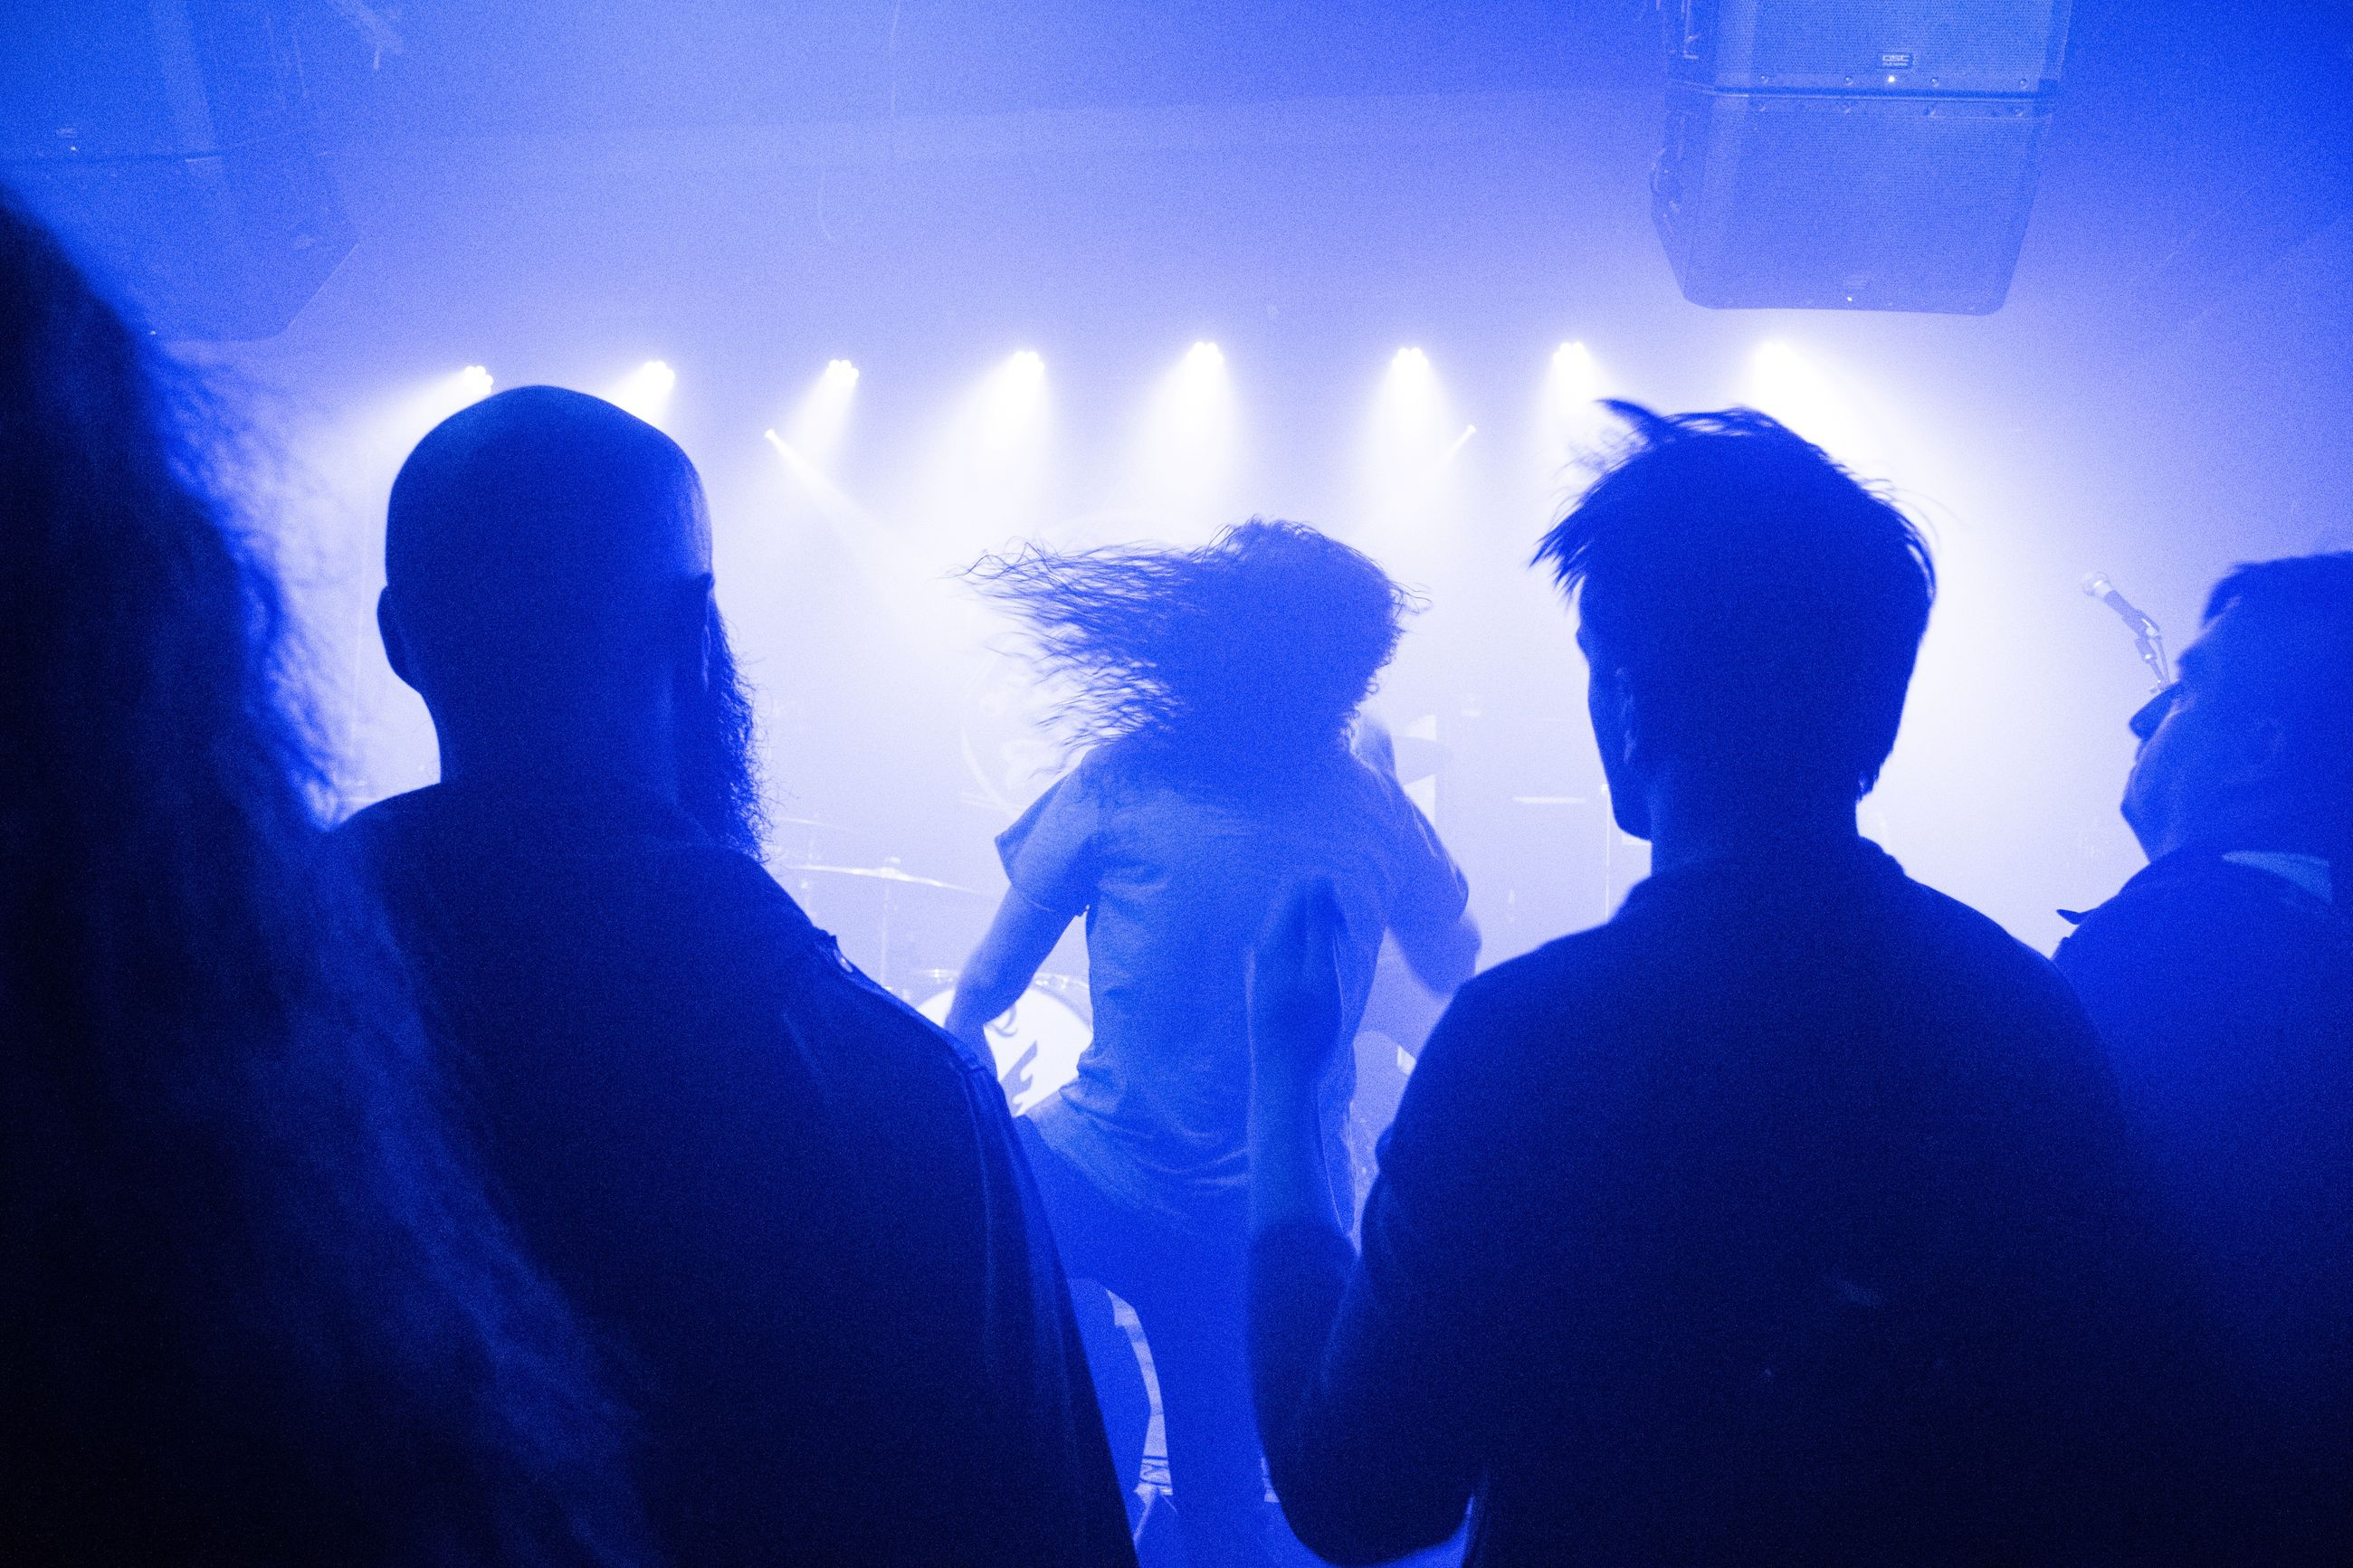 nightlife, togetherness, real people, enjoyment, blue, fun, arts culture and entertainment, men, silhouette, night, excitement, indoors, illuminated, crowd, leisure activity, nightclub, music, performance, women, youth culture, audience, popular music concert, friendship, musician, people